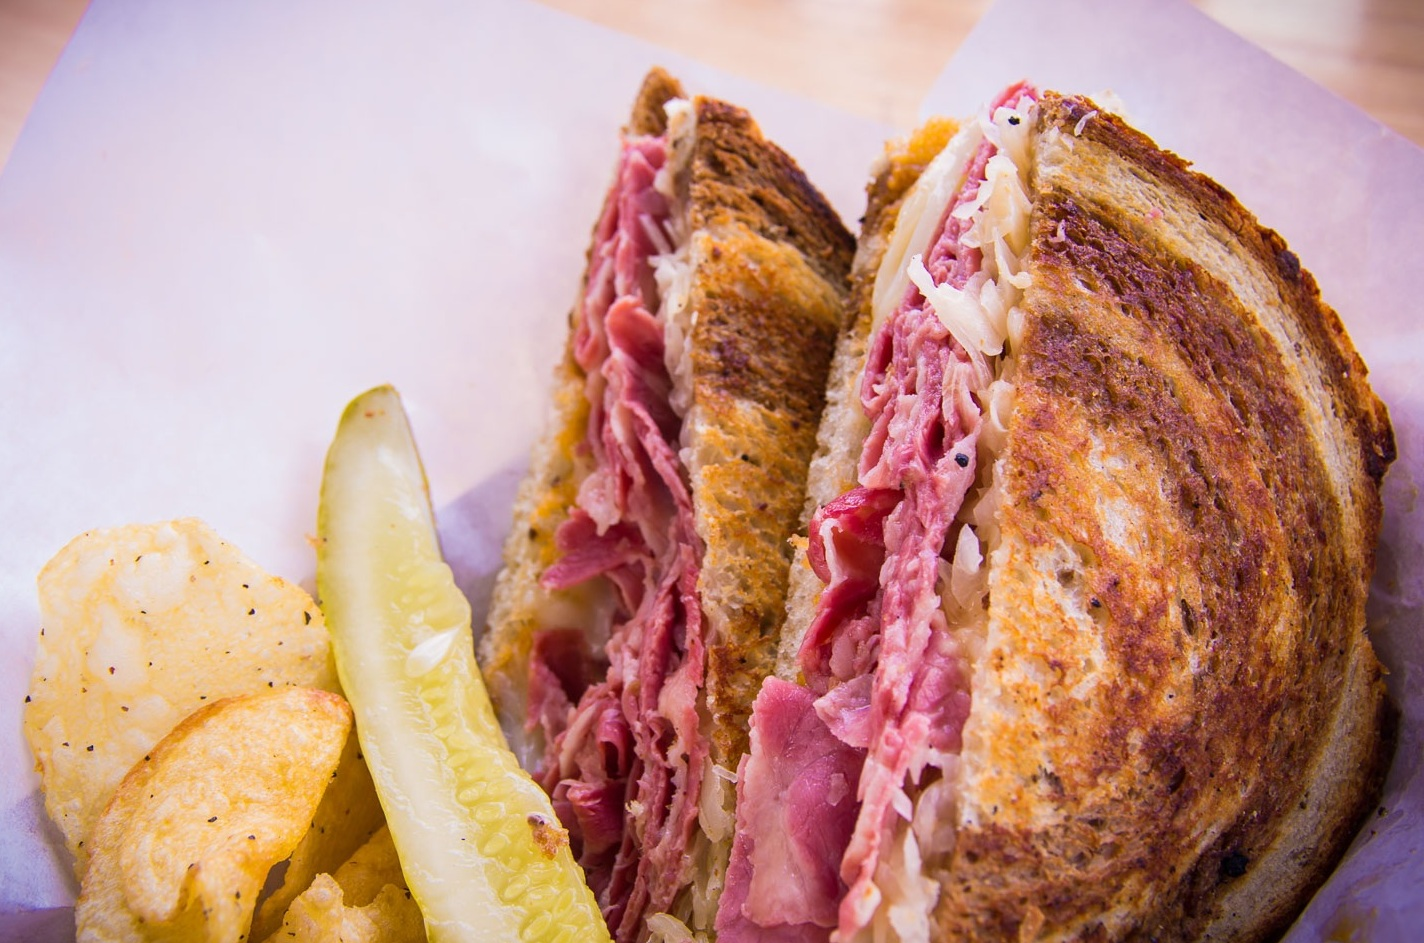 Deli Sandwiches - The sandwiches at Baked in Telluride are top notch enjoy them on one of our fresh baked BIT bakery breads!